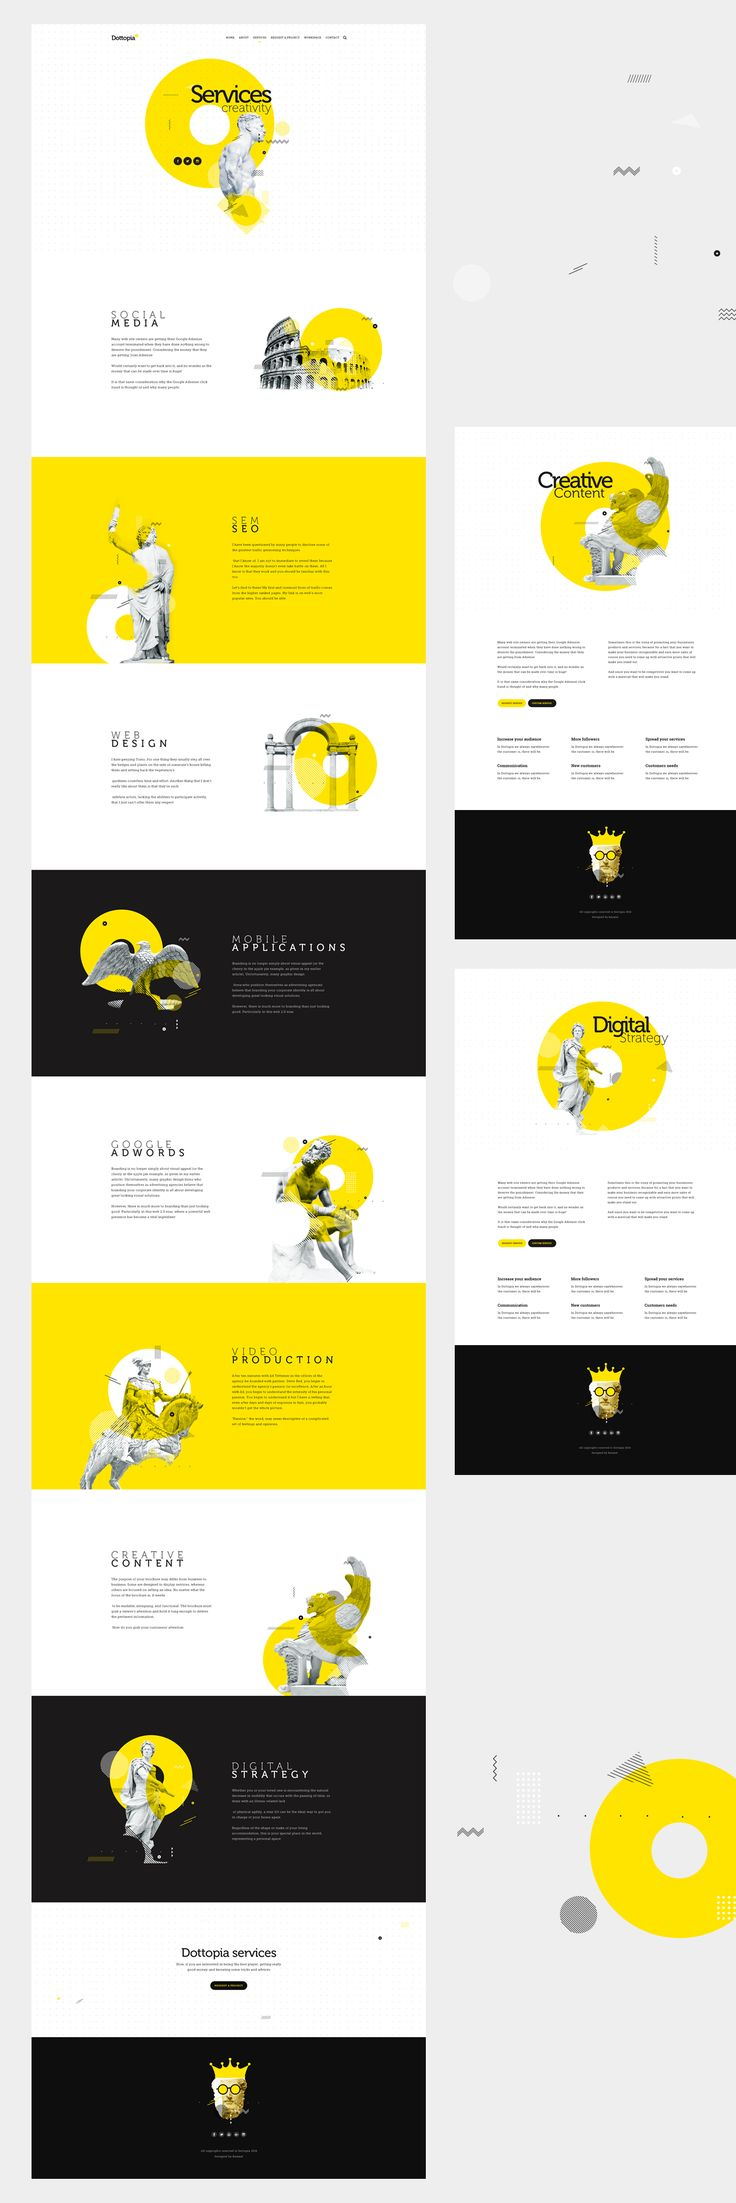 Dottopia web design UX/UI on Behance